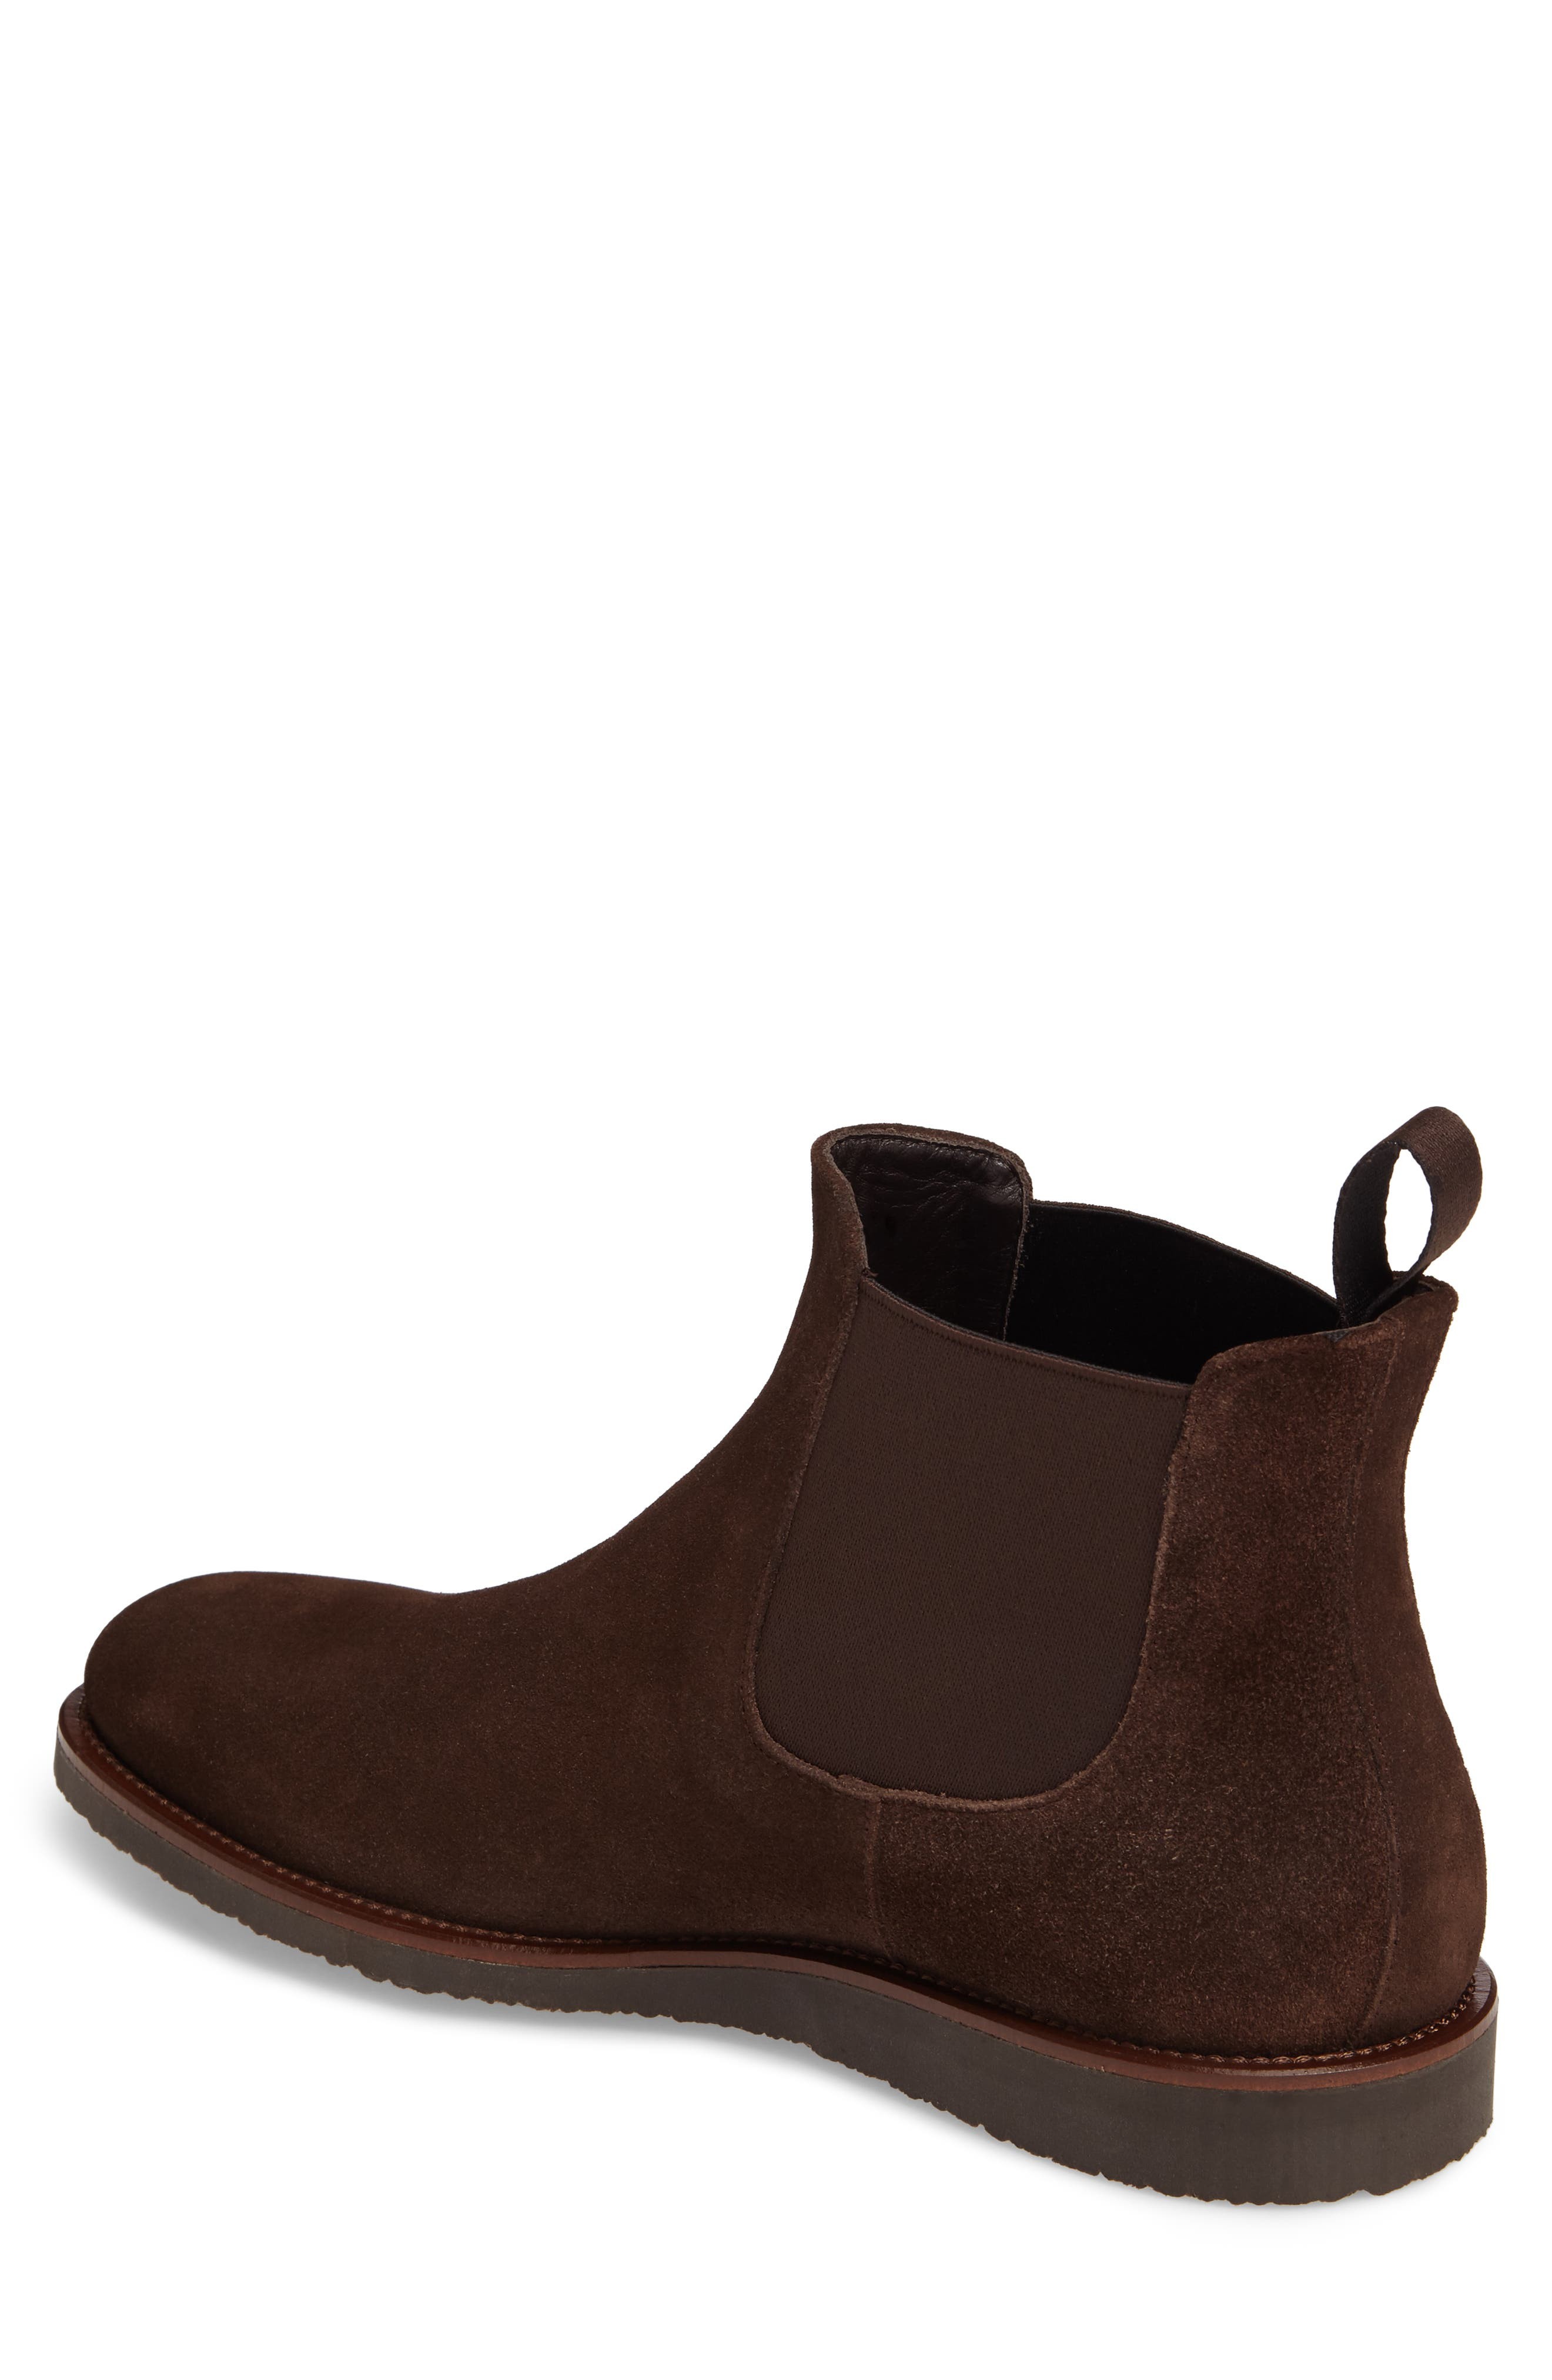 Corden Chelsea Boot,                             Alternate thumbnail 2, color,                             Otterproof Moro